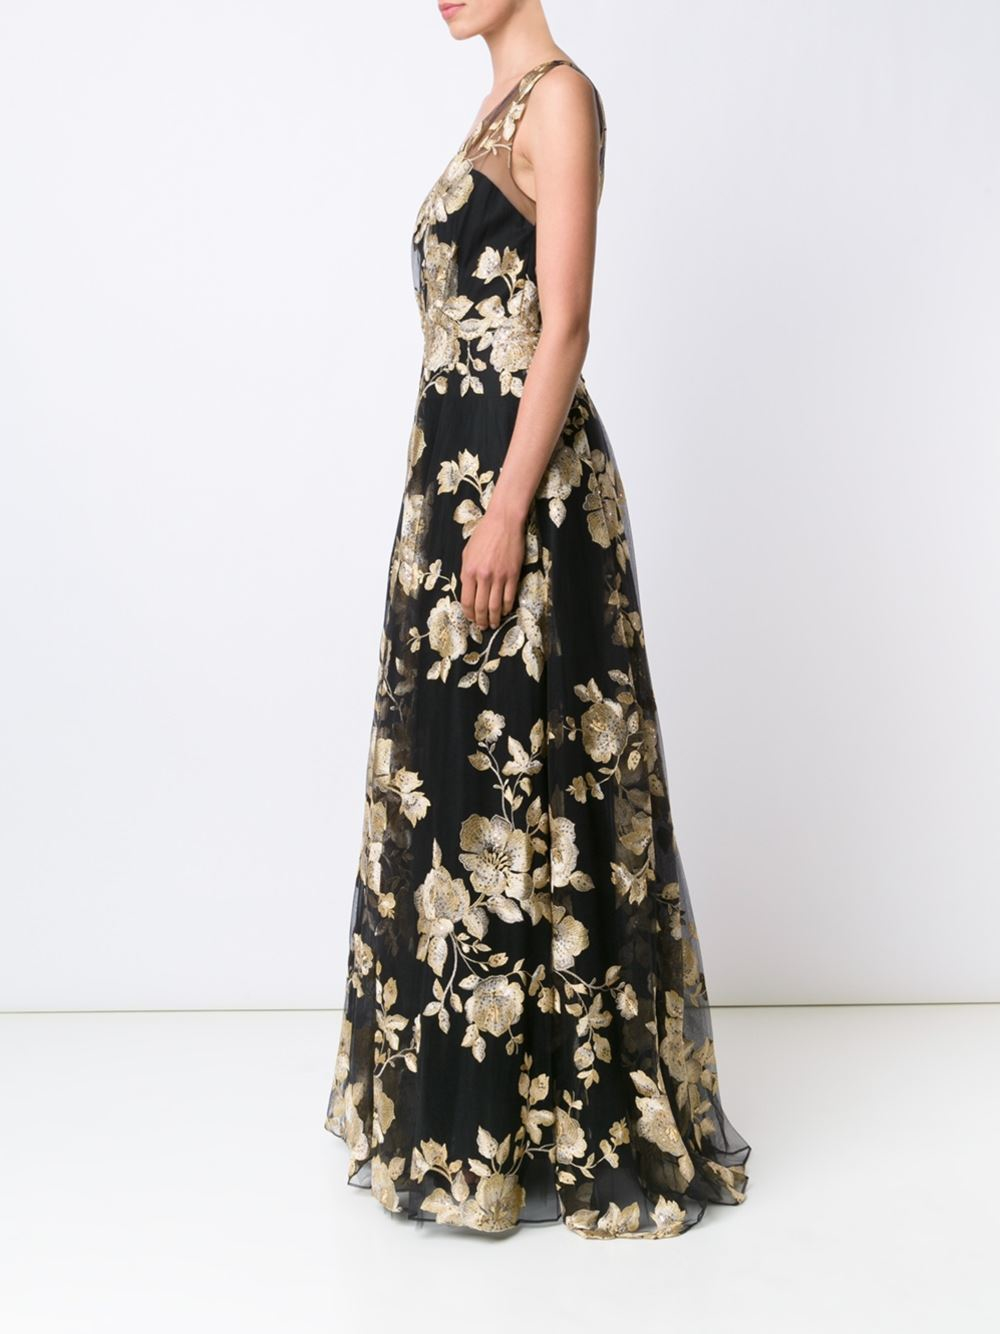 Marchesa Synthetic Sleeveless Floral-embroidered Ball Gown in Black